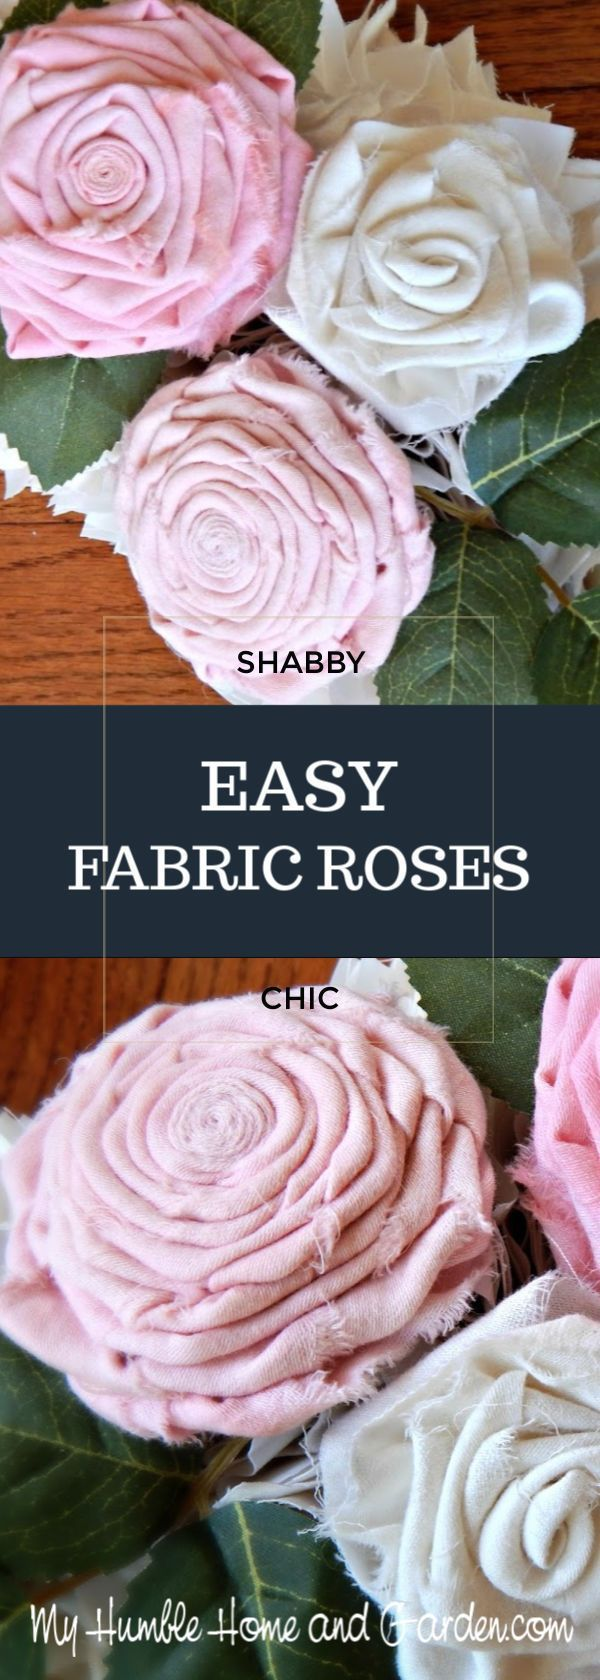 Photo of Simple fabric roses that you will make for your shabby chic decor